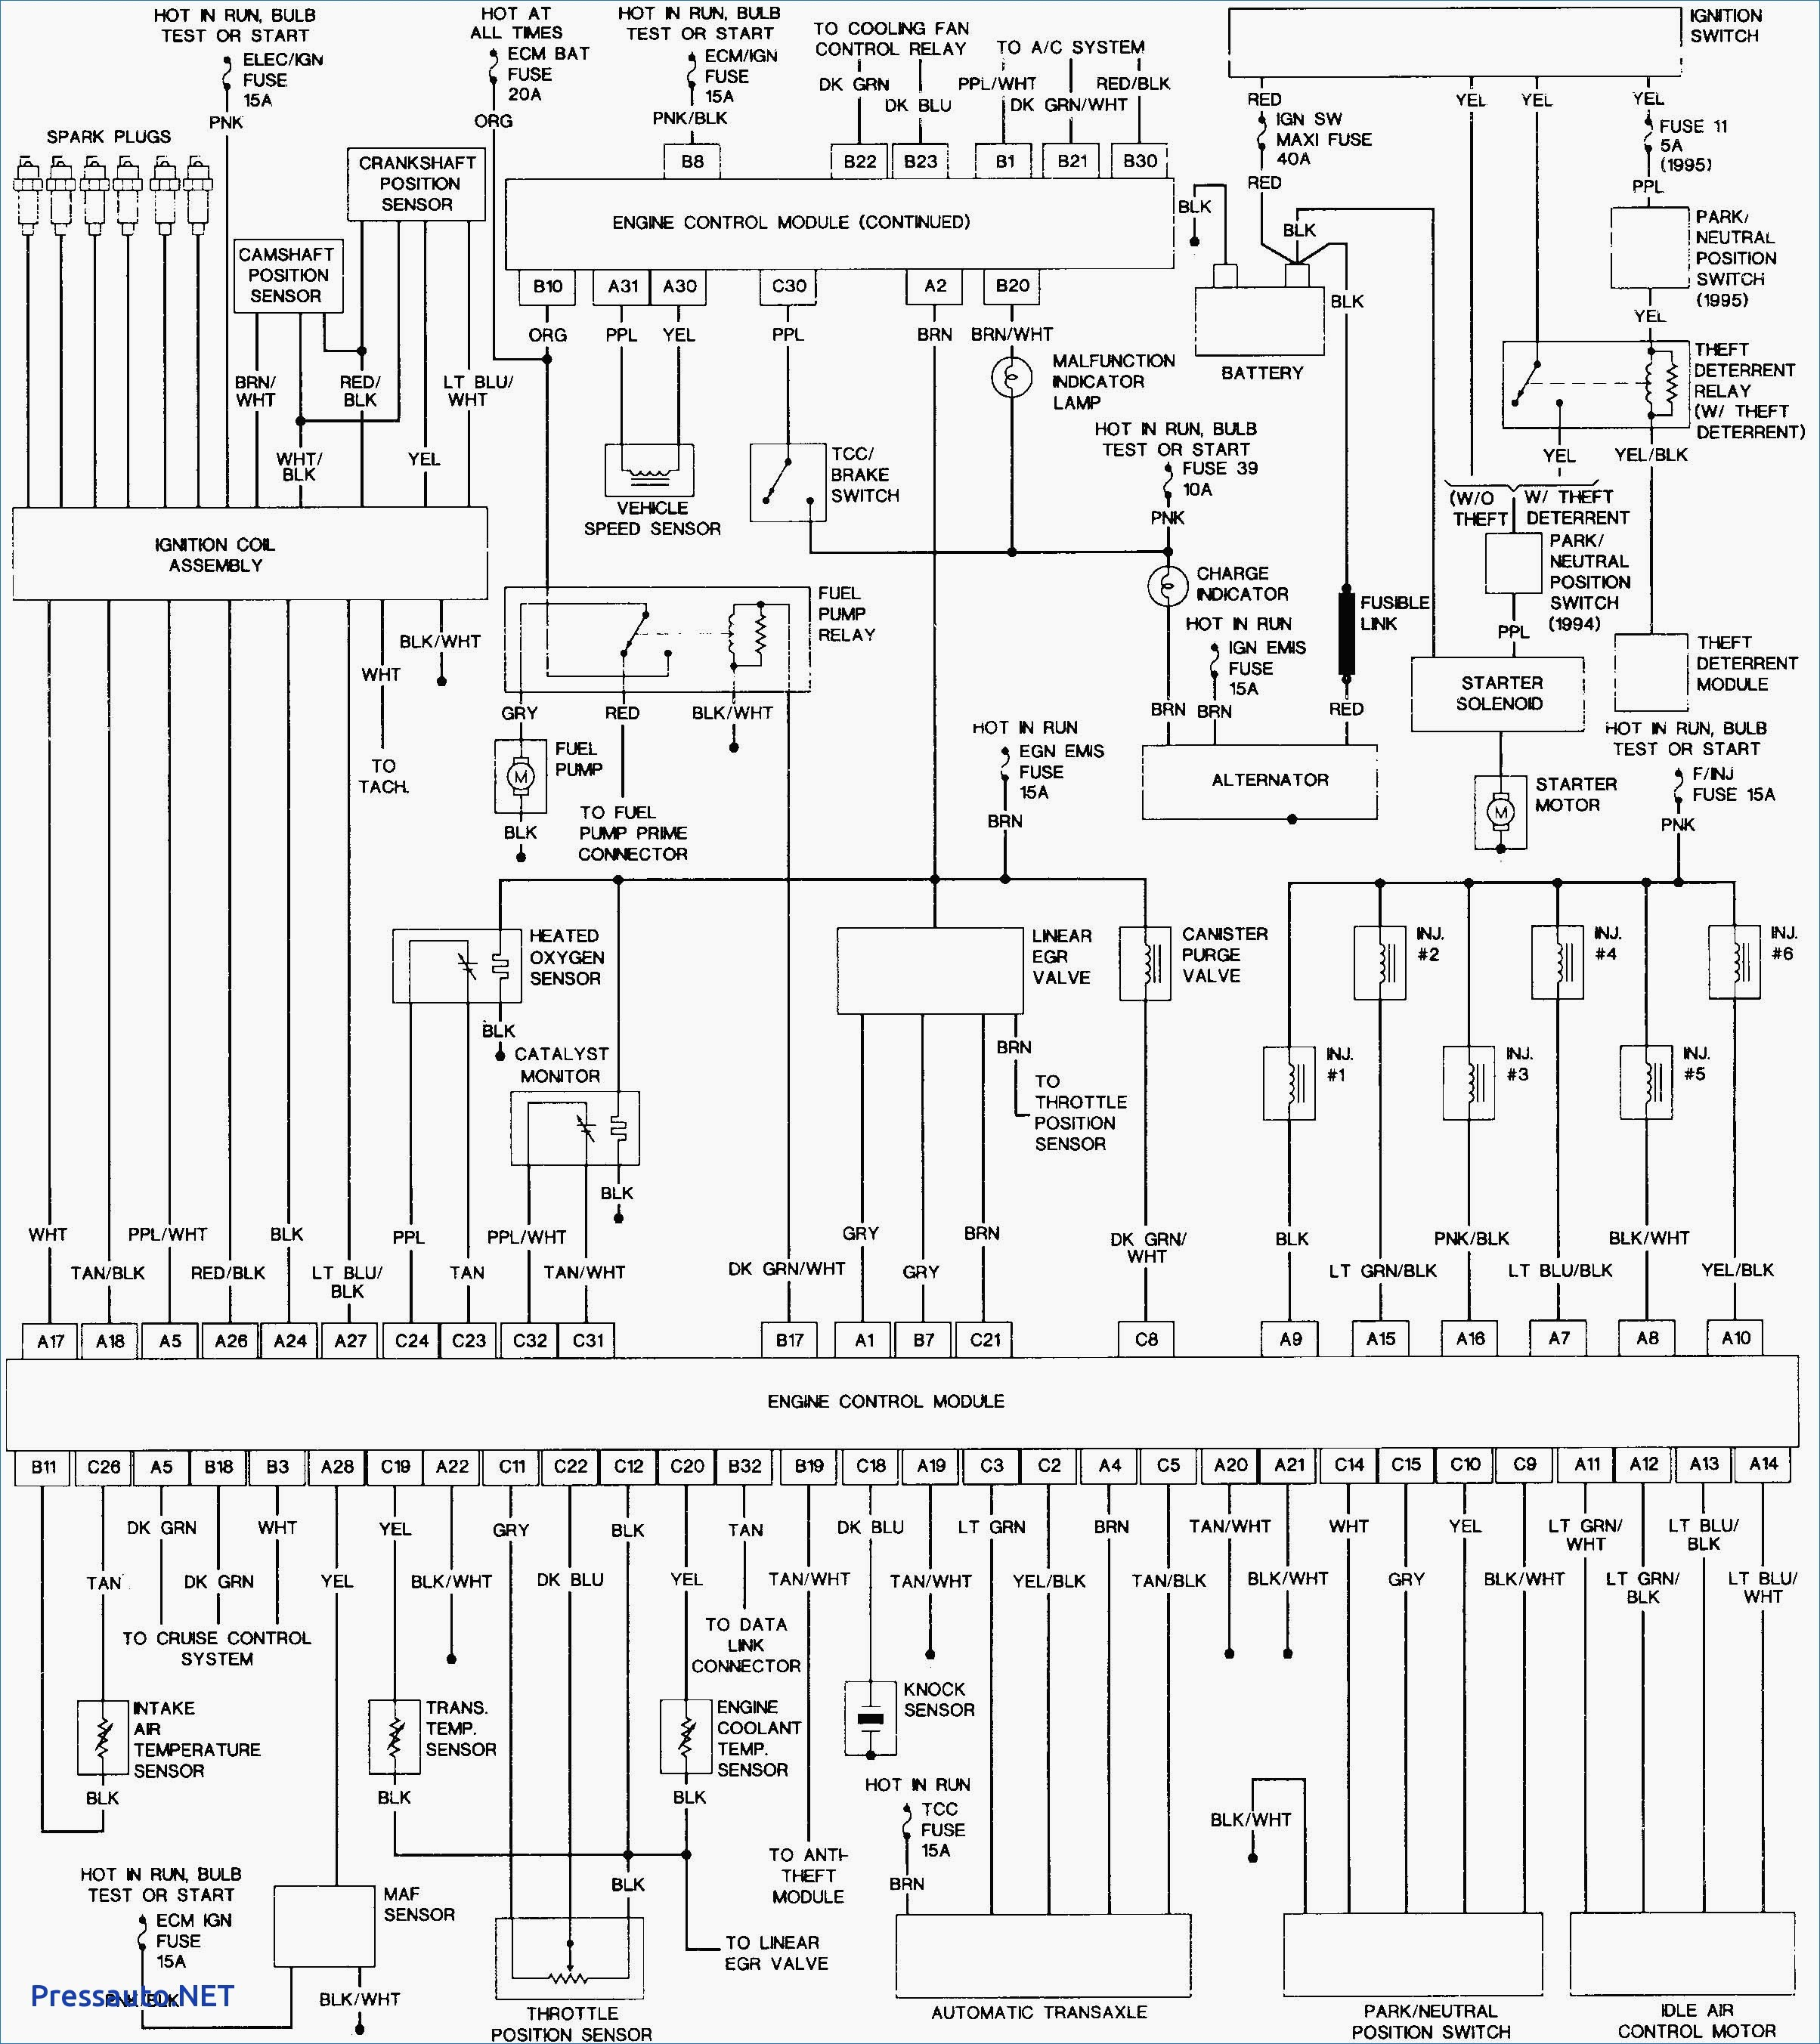 2004 Jetta Engine Diagram Headlight Wiring Schematic 2001 Vw Jetta Mk4 Diagram Jpg Fit Of 2004 Jetta Engine Diagram